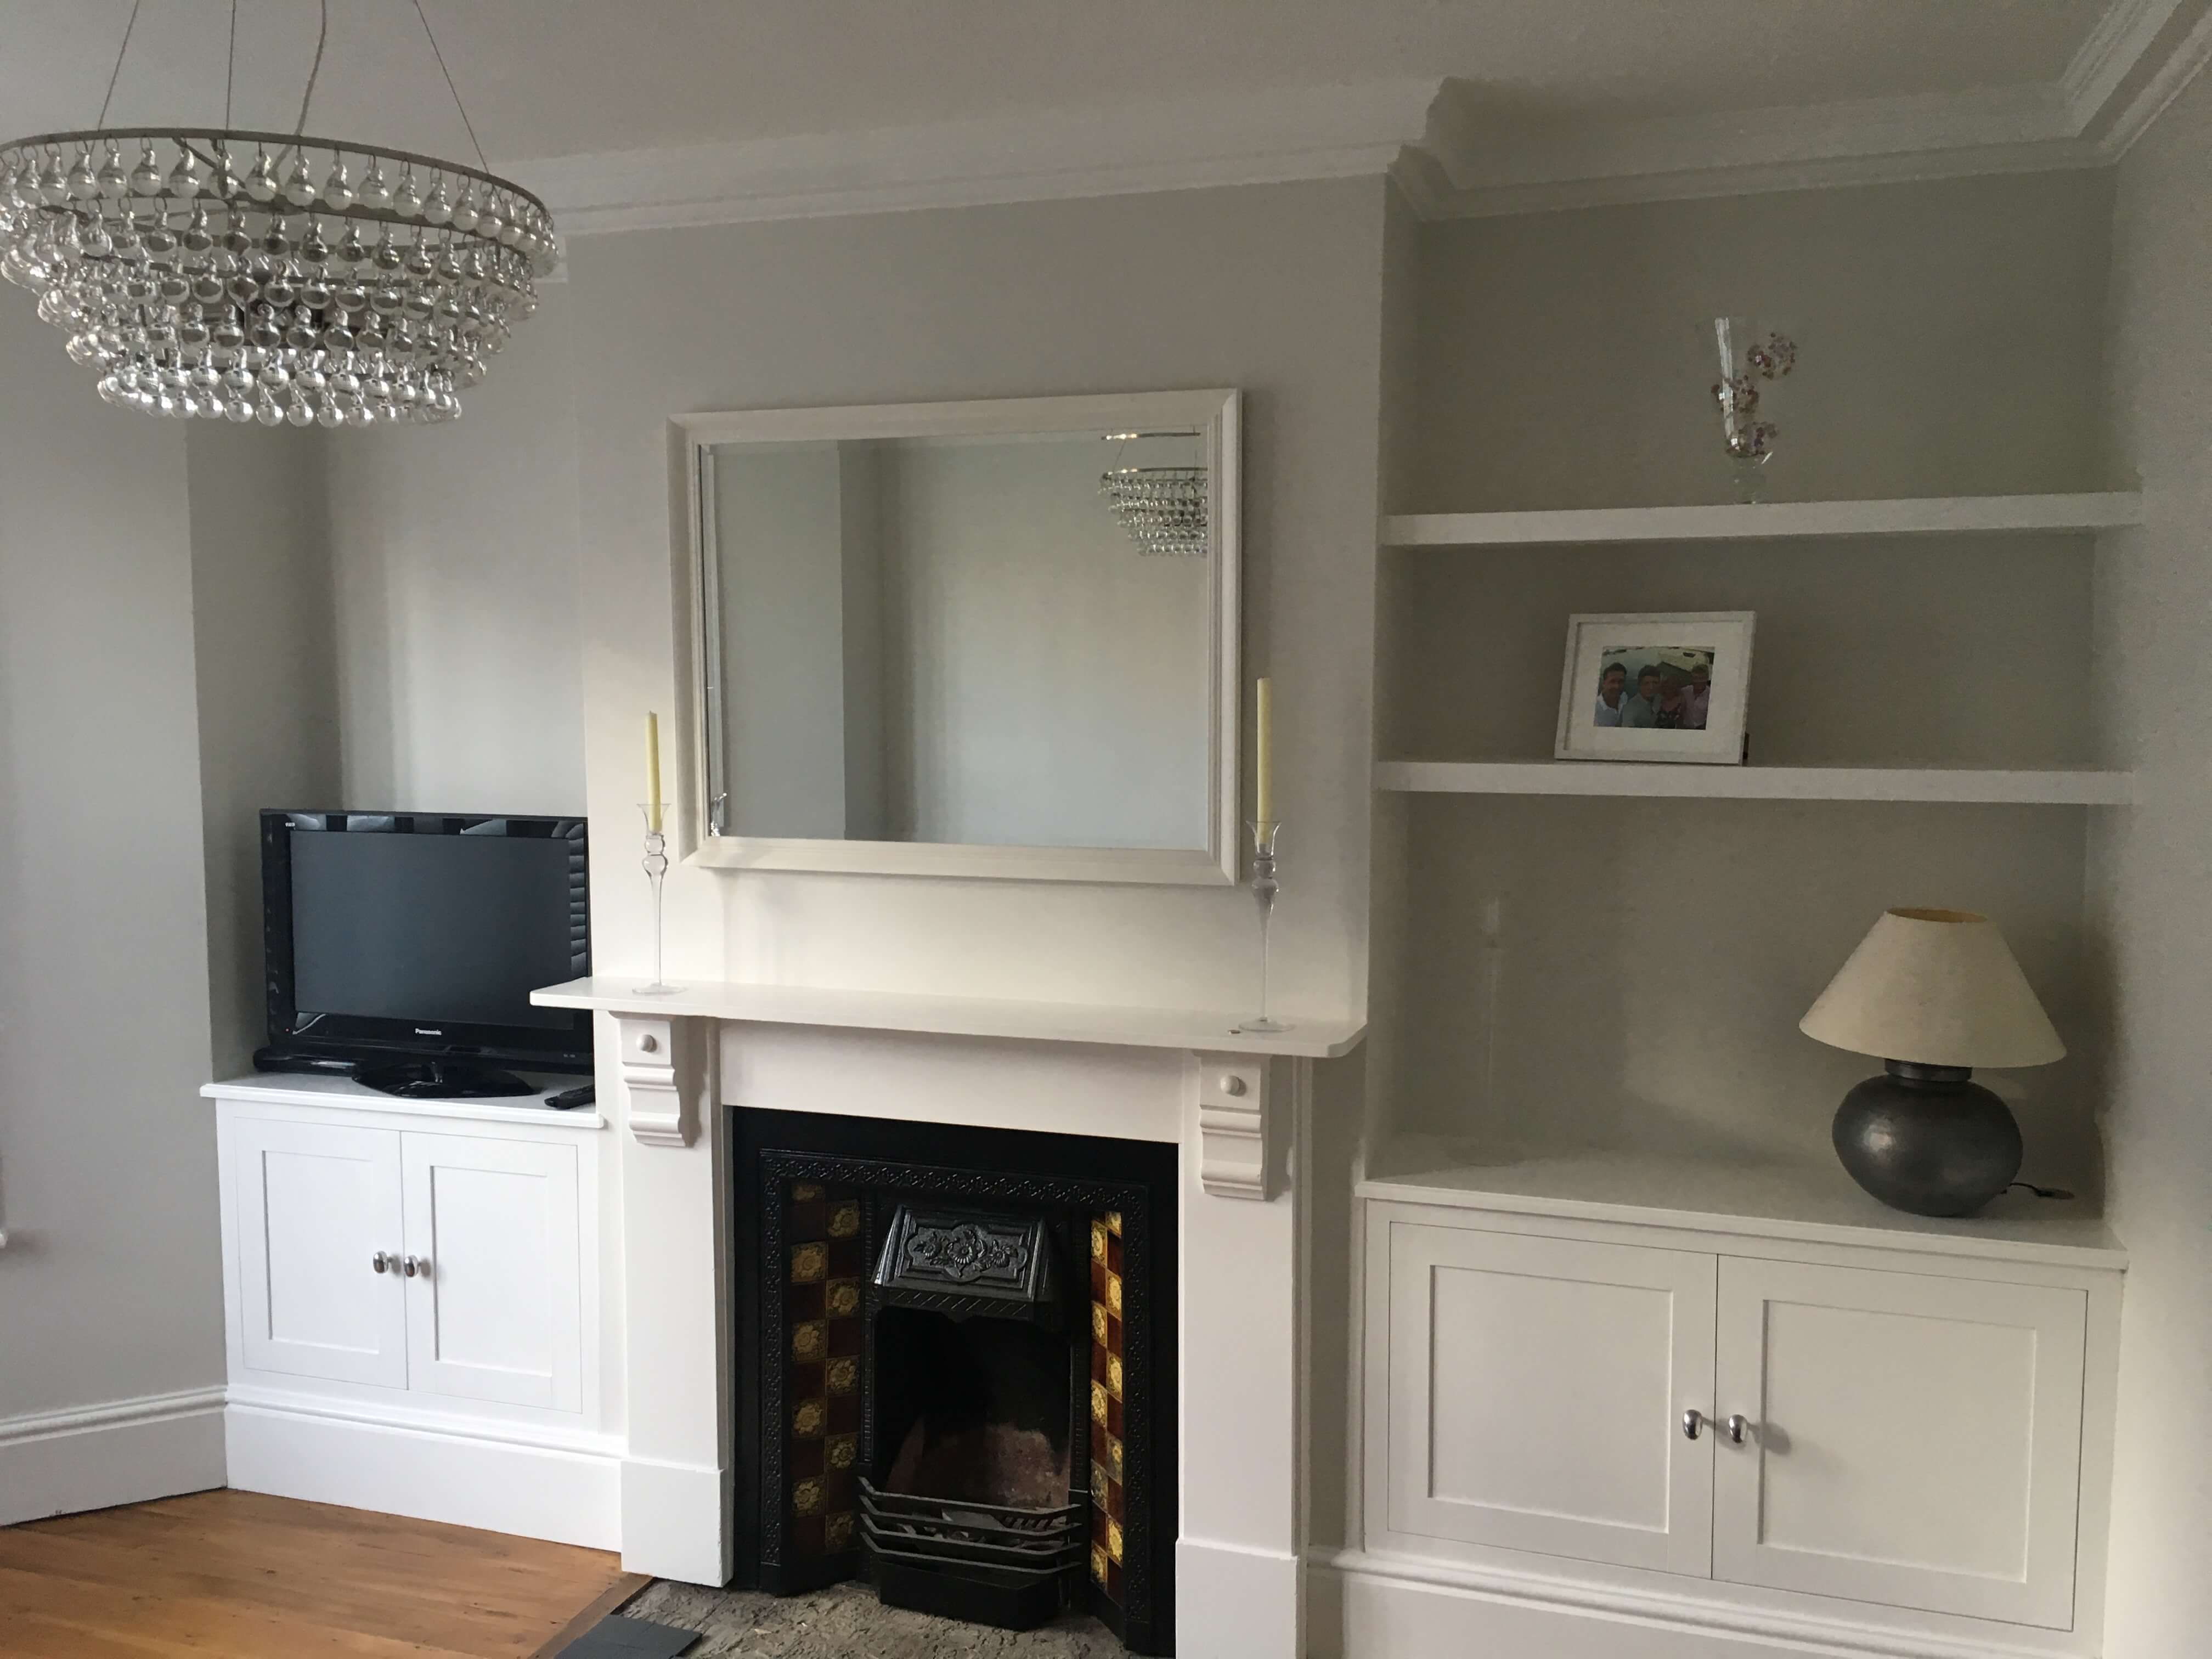 fitted furniture, fitted cupboards, alcove cupboards, shelf's, fitted shelves, storage, bespoke storage, bespoke fitted furniture, bespoke cupboards, bespoke storage, elegant bespoke living, fitted wardrobes